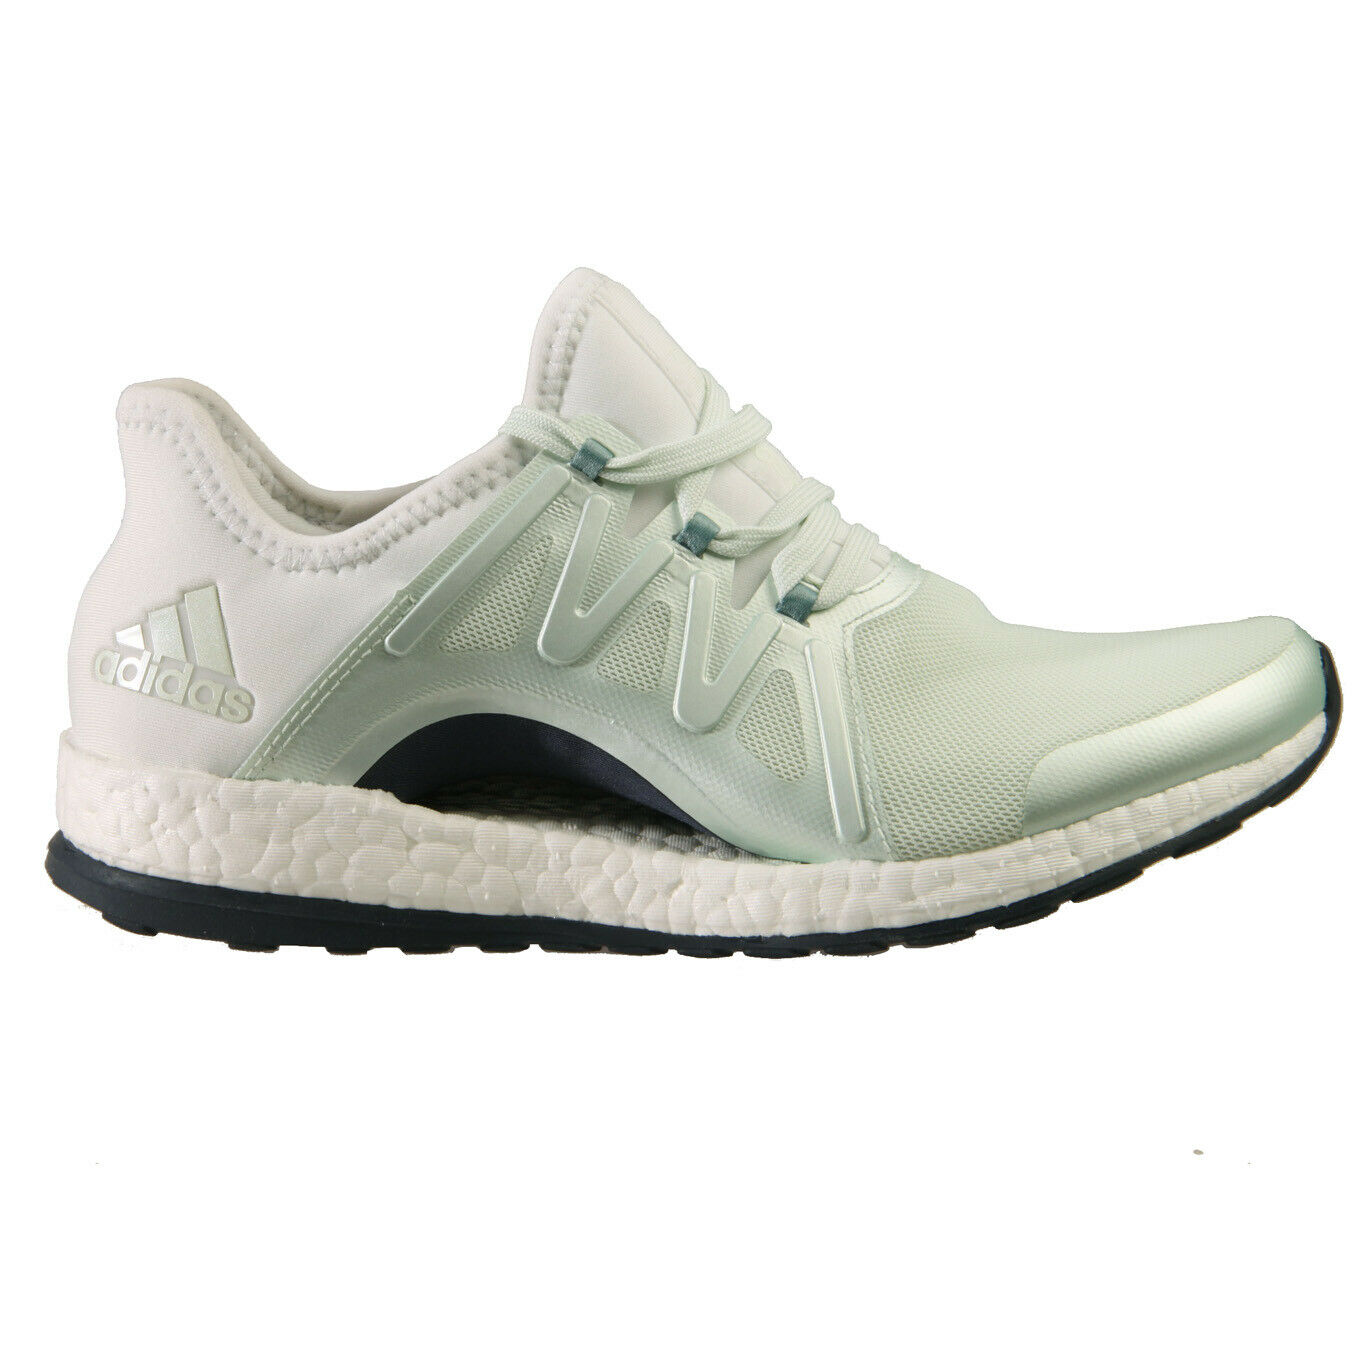 Adidas Pure Boost Xpose Womens BB1732 Linen Green Steel Running shoes Size 6